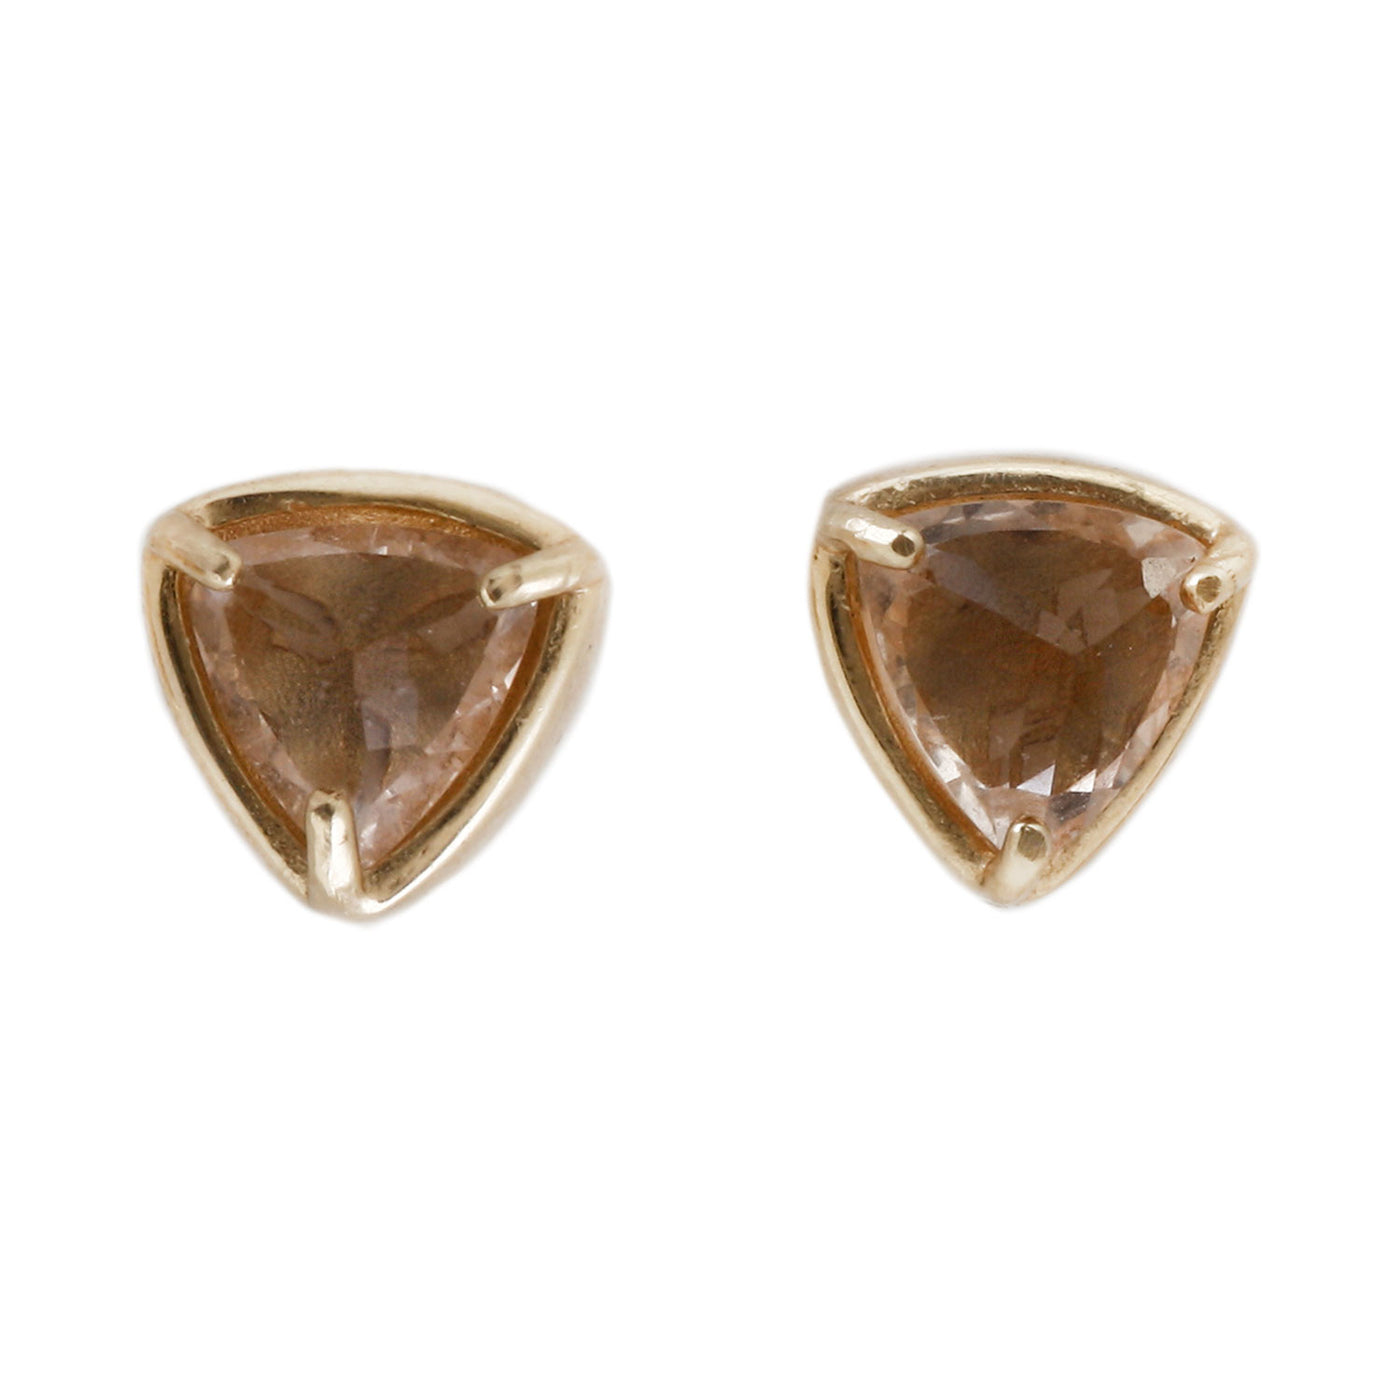 14k yellow gold stud earrings with trillion cut morganite - Lauren Wolf Jewelry